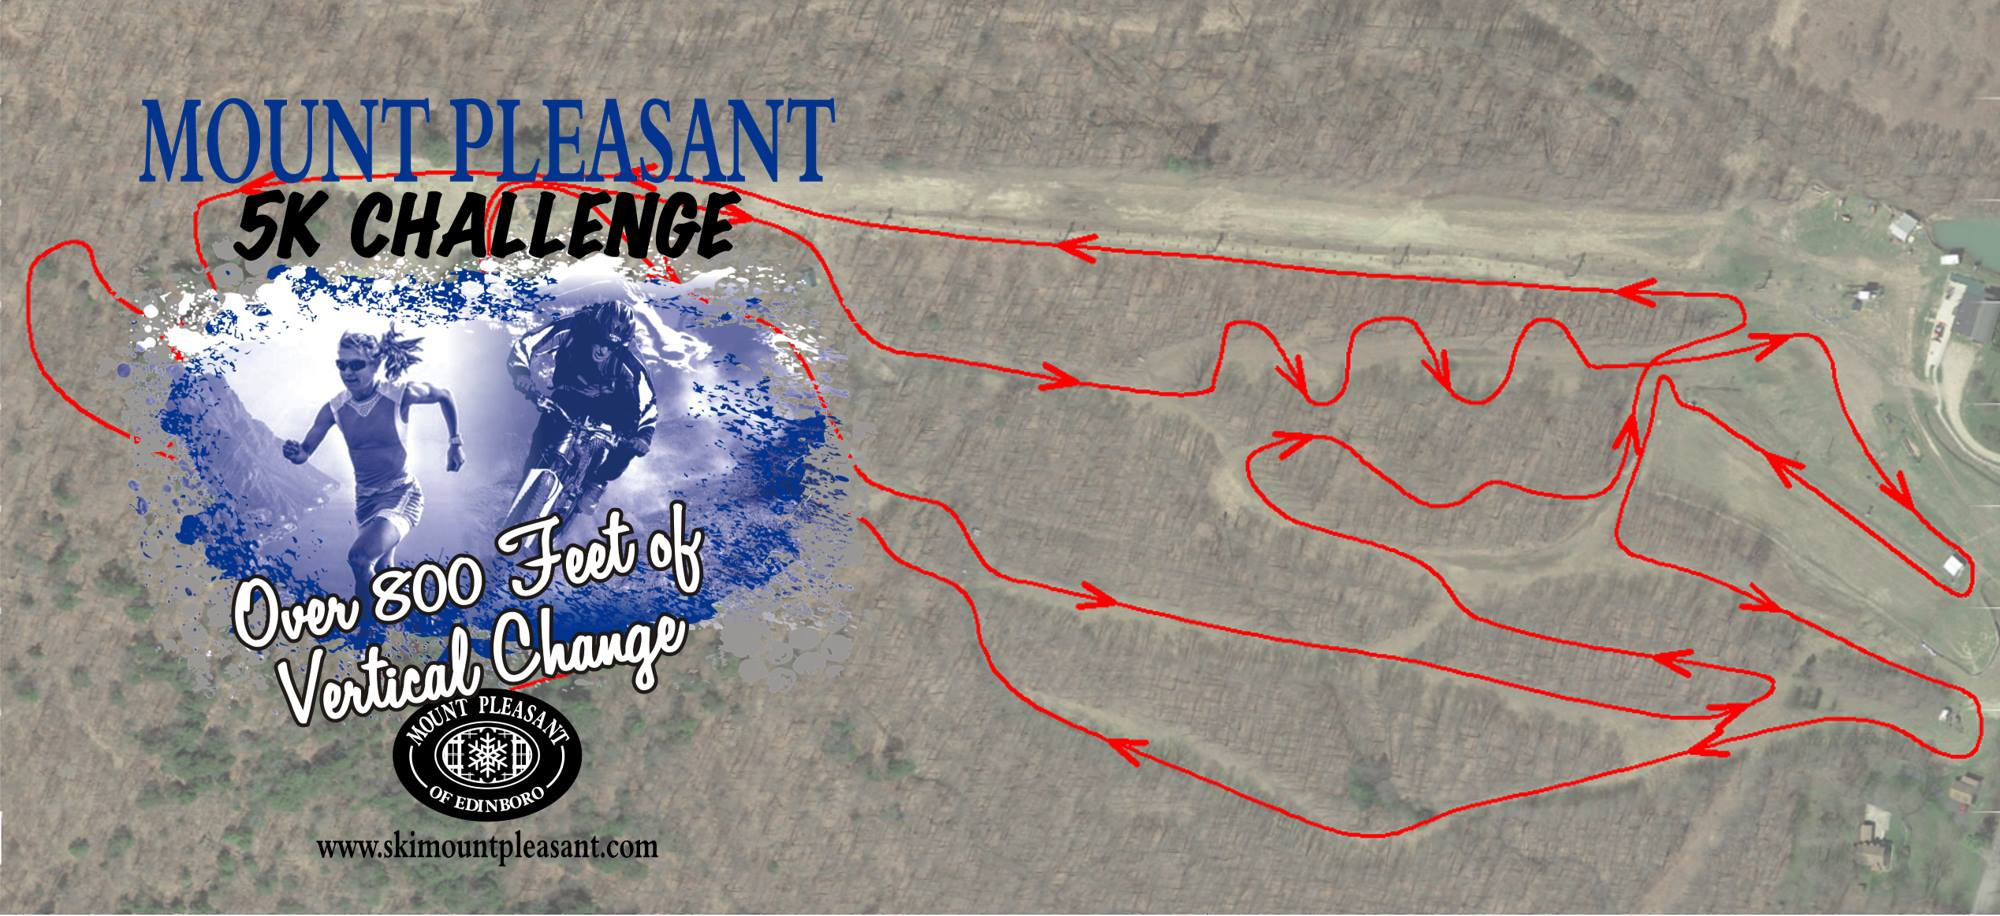 Mount Pleasant 5K Challenge Saturday, October 7th